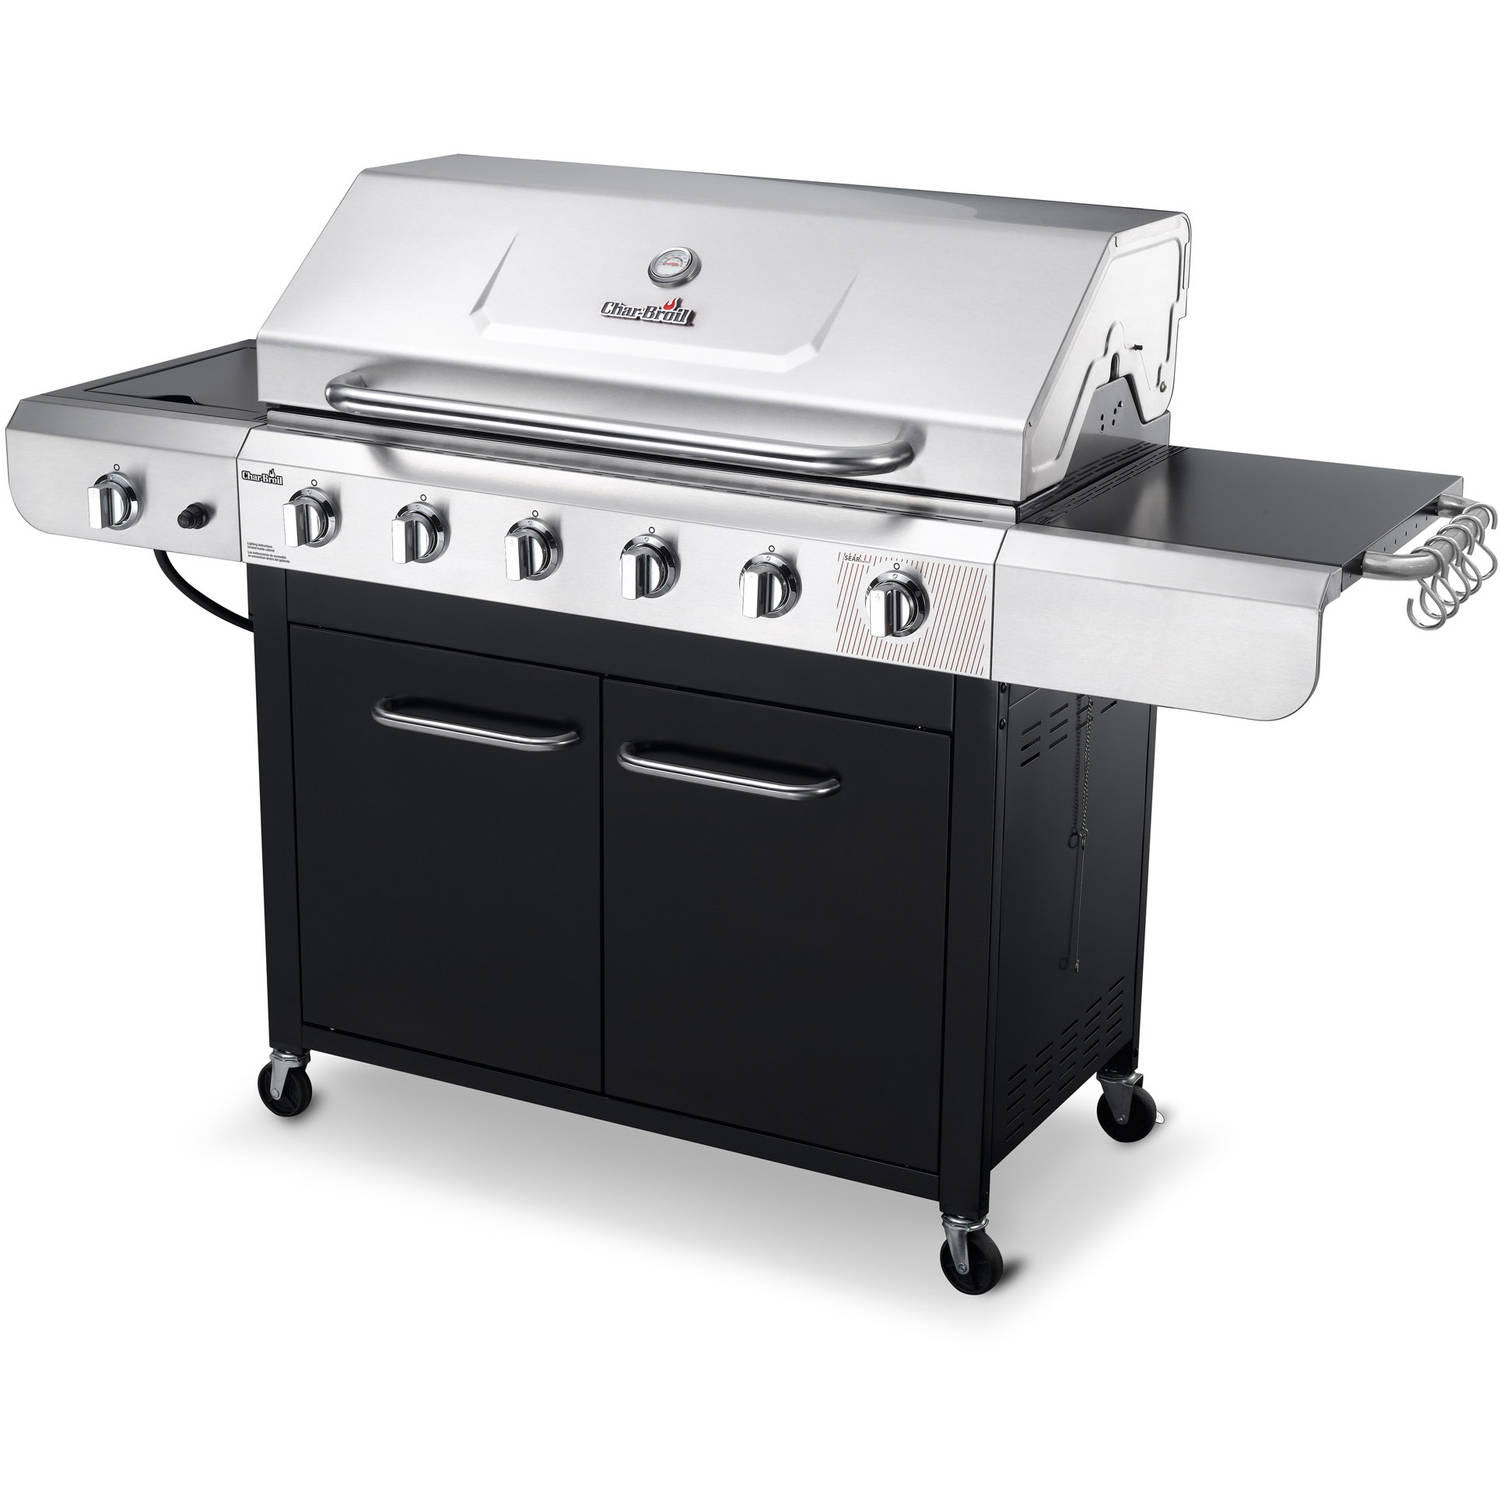 Char-Broil Convective 6-Burner Grill, Stainless Steel/Black